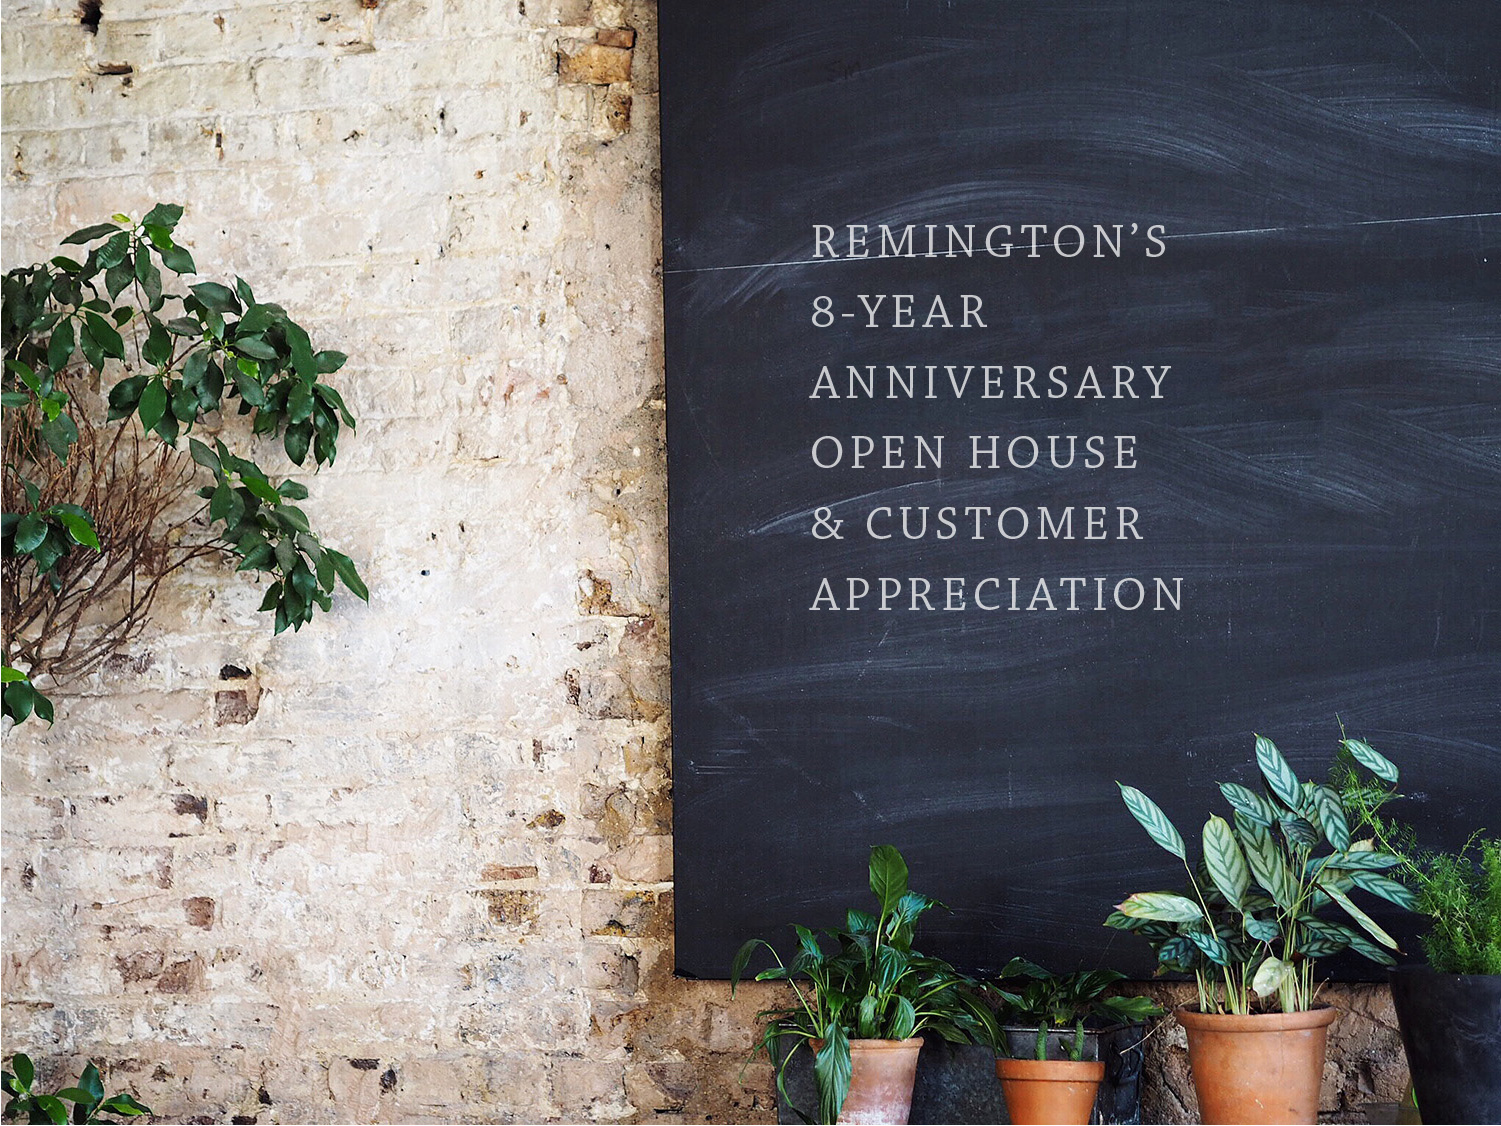 Remington's 8th Anniversary Open House